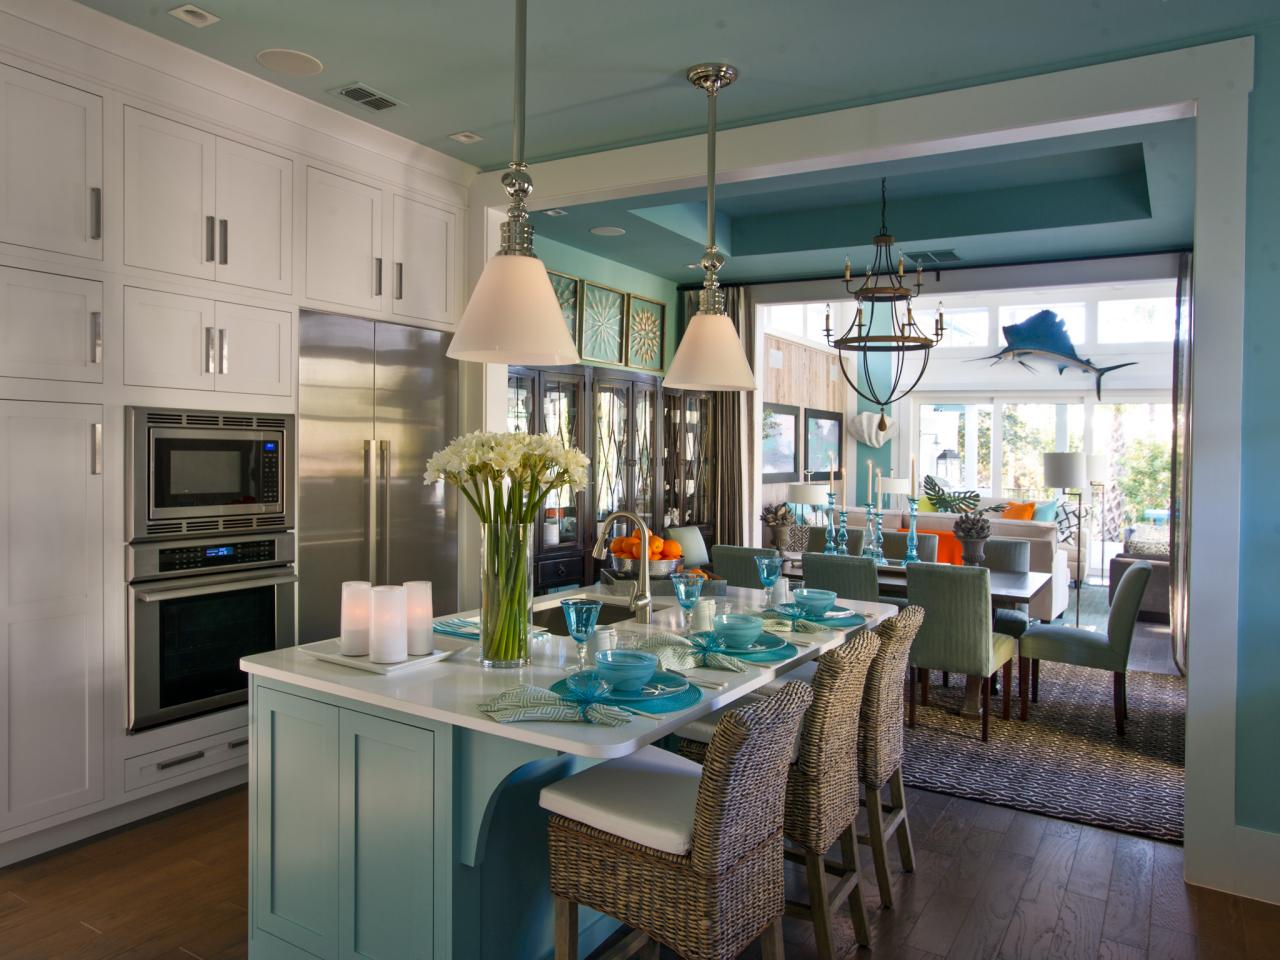 Small kitchen island ideas pictures tips from hgtv hgtv for Island in small galley kitchen